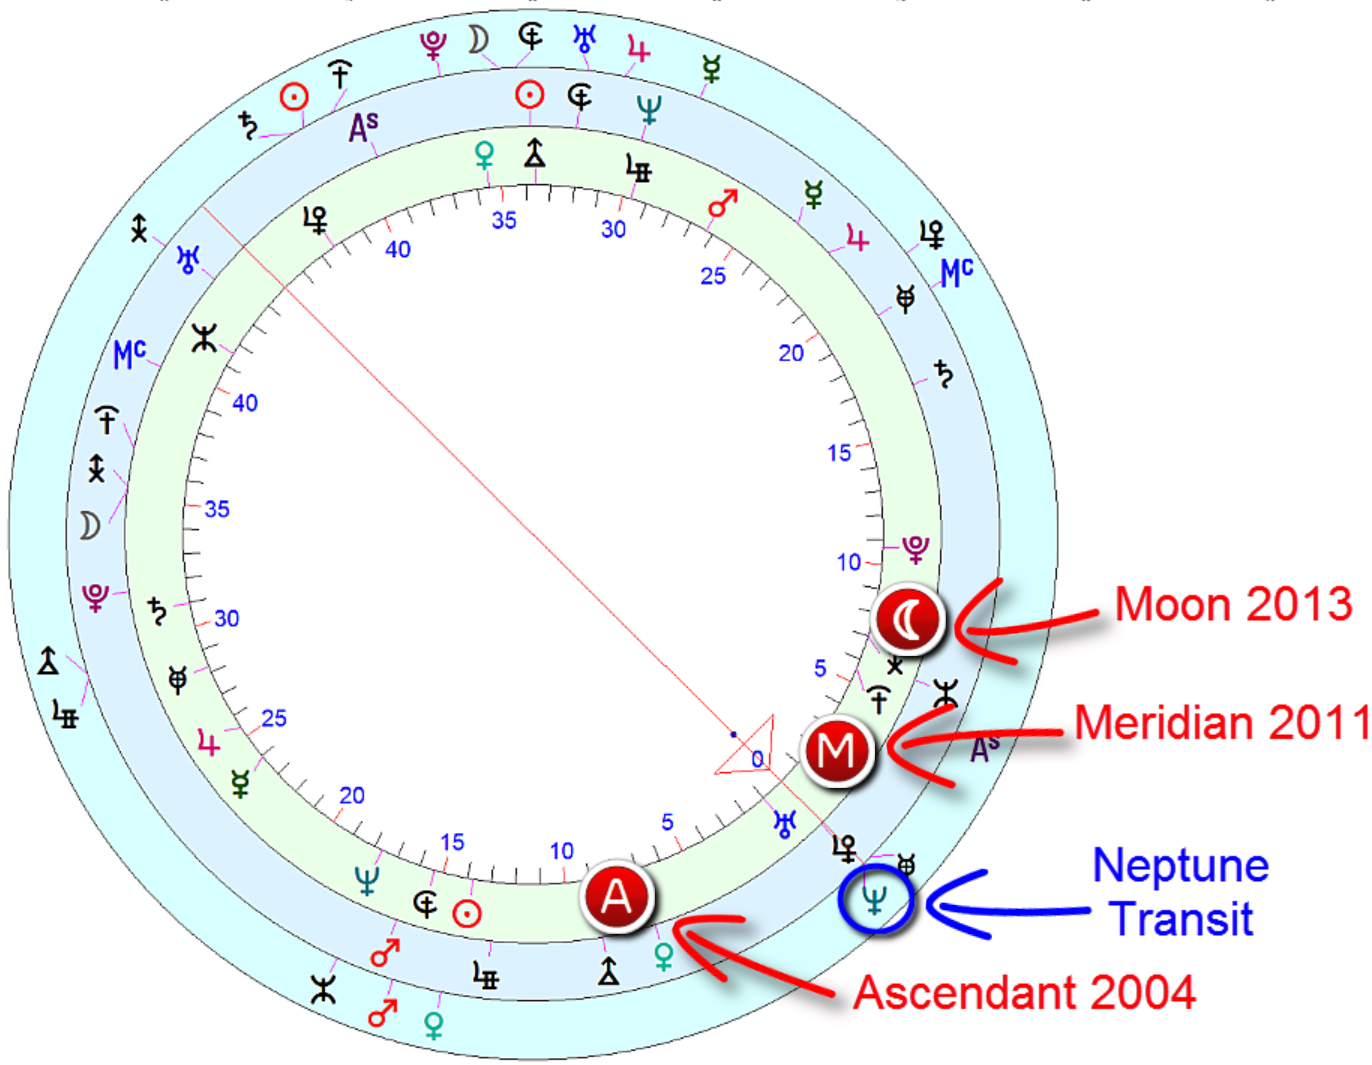 Neptune transit to obama's ascendant, Meridian and moon